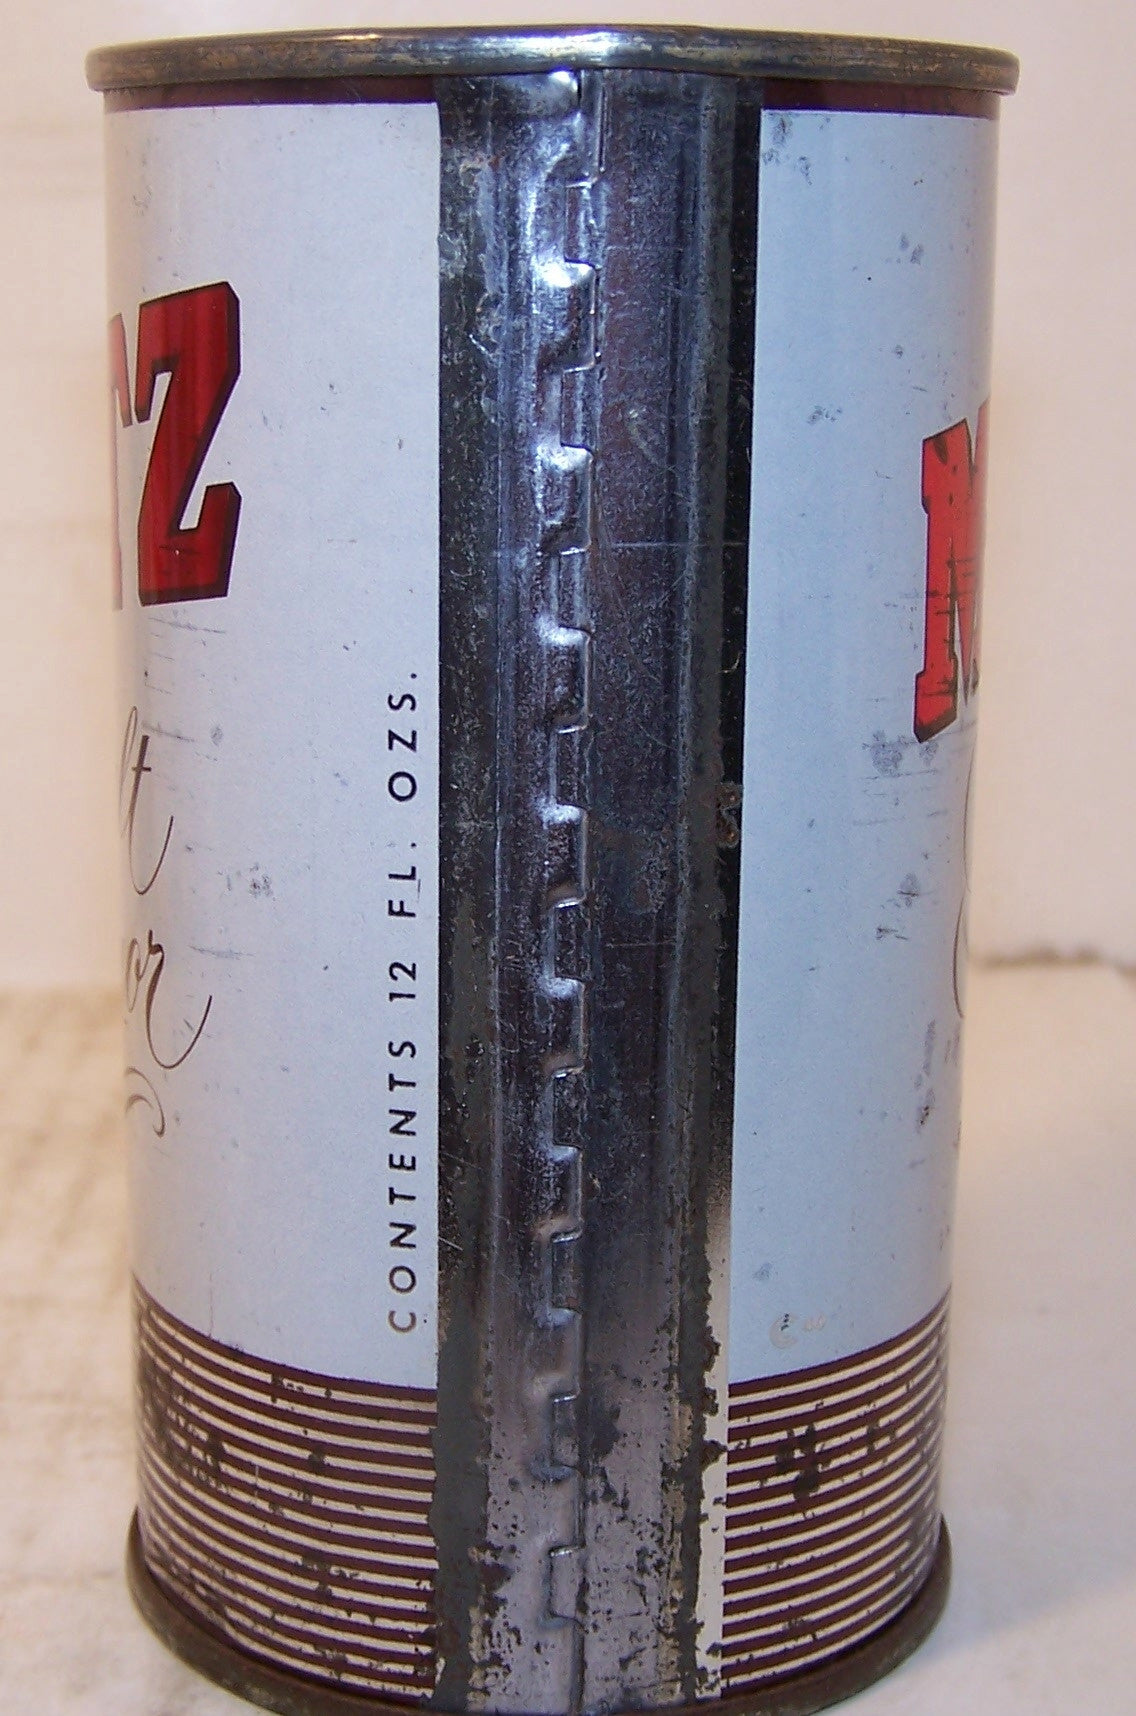 Metz Malt Liquor, USBC 99-22, Grade 1- Sold on 2/10/15